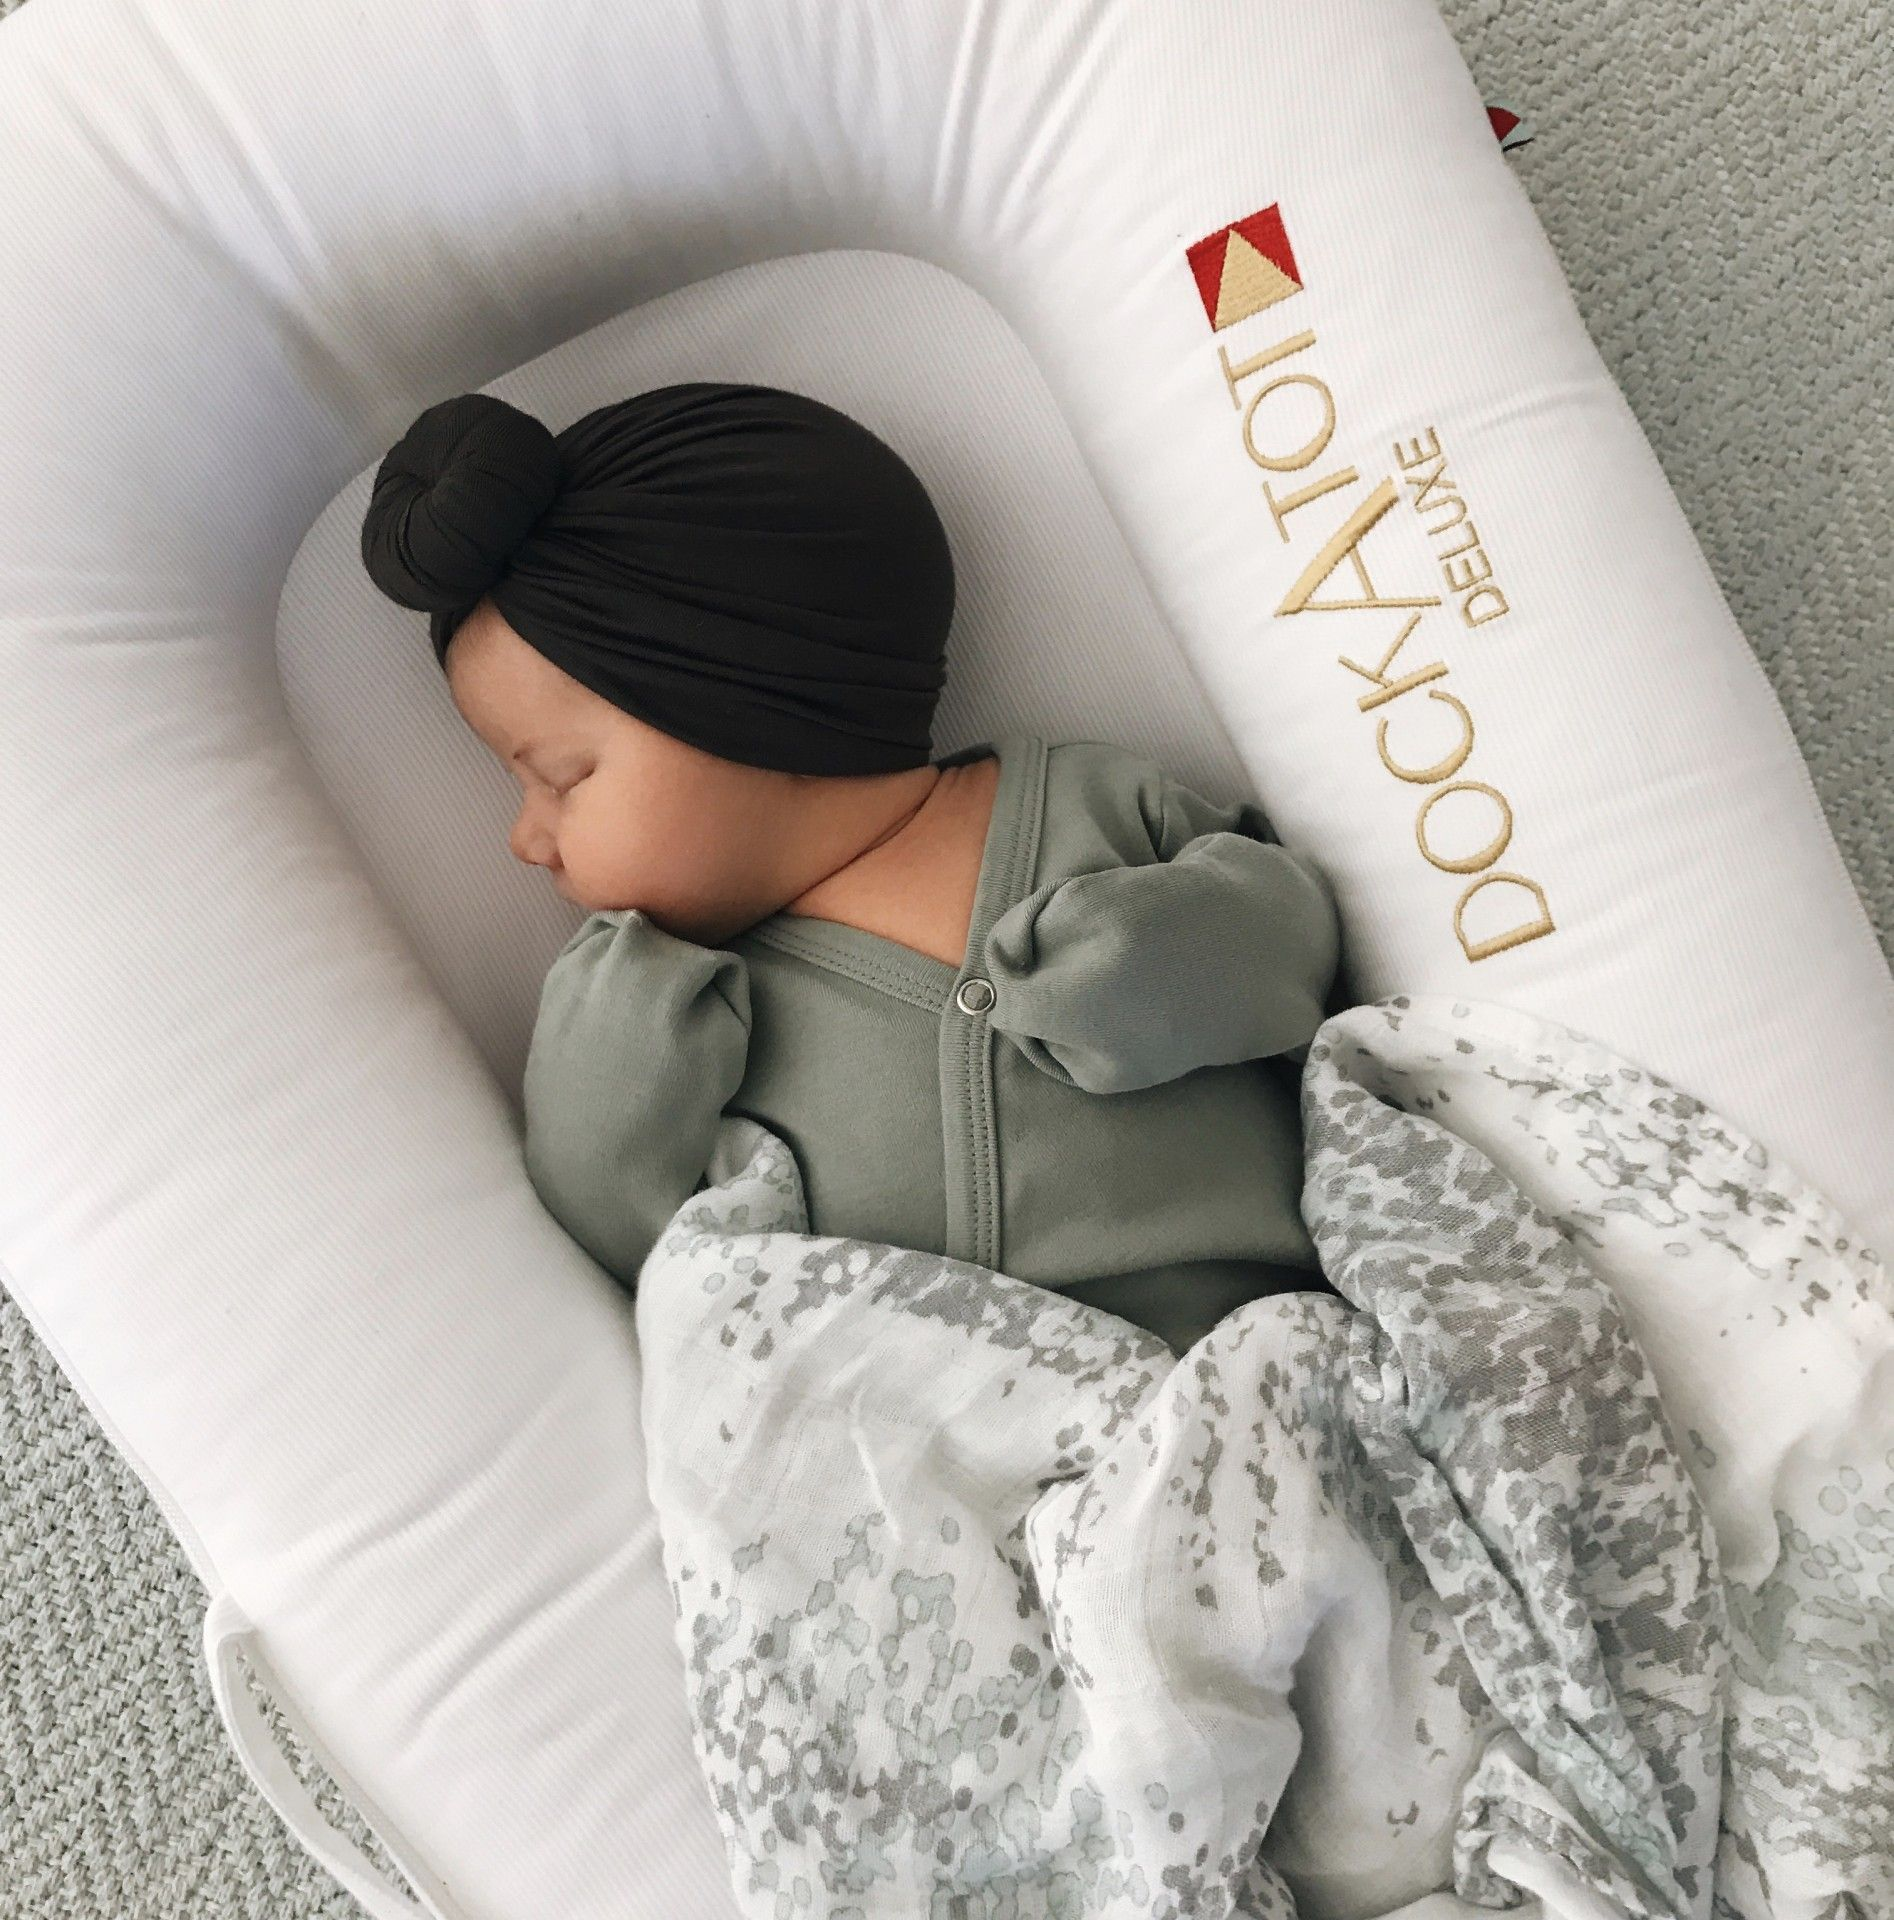 Love The Dock A Tot Co Sleeper For Newborn Days So Cozy And We  # Muebles Tot Stil